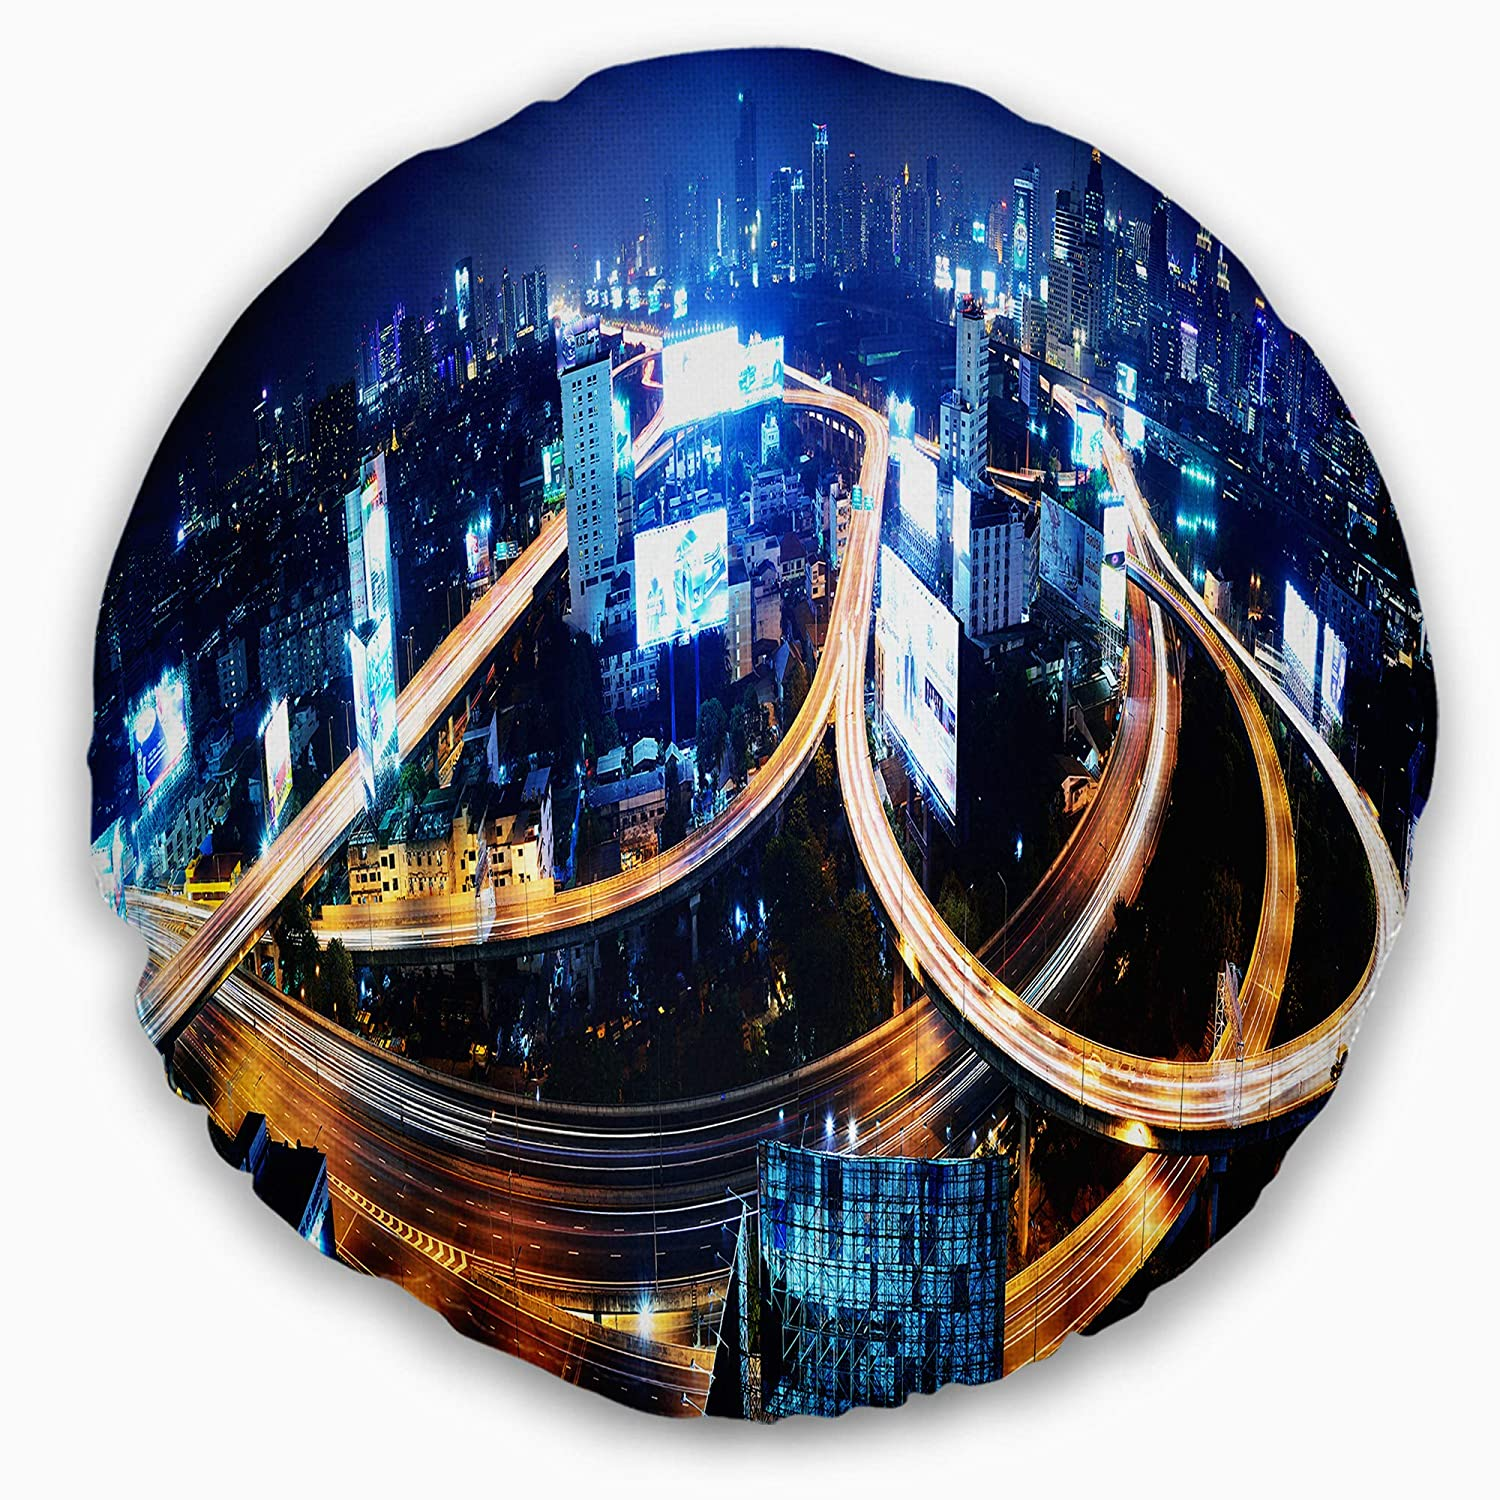 Designart Cu8256 20 20 C Bangkok Expressway Aerial View Cityscape Photo Round Cushion Cover For Living Room Sofa Throw Pillow 20 Insert Printed On Both Side Throw Pillow Covers Home Kitchen